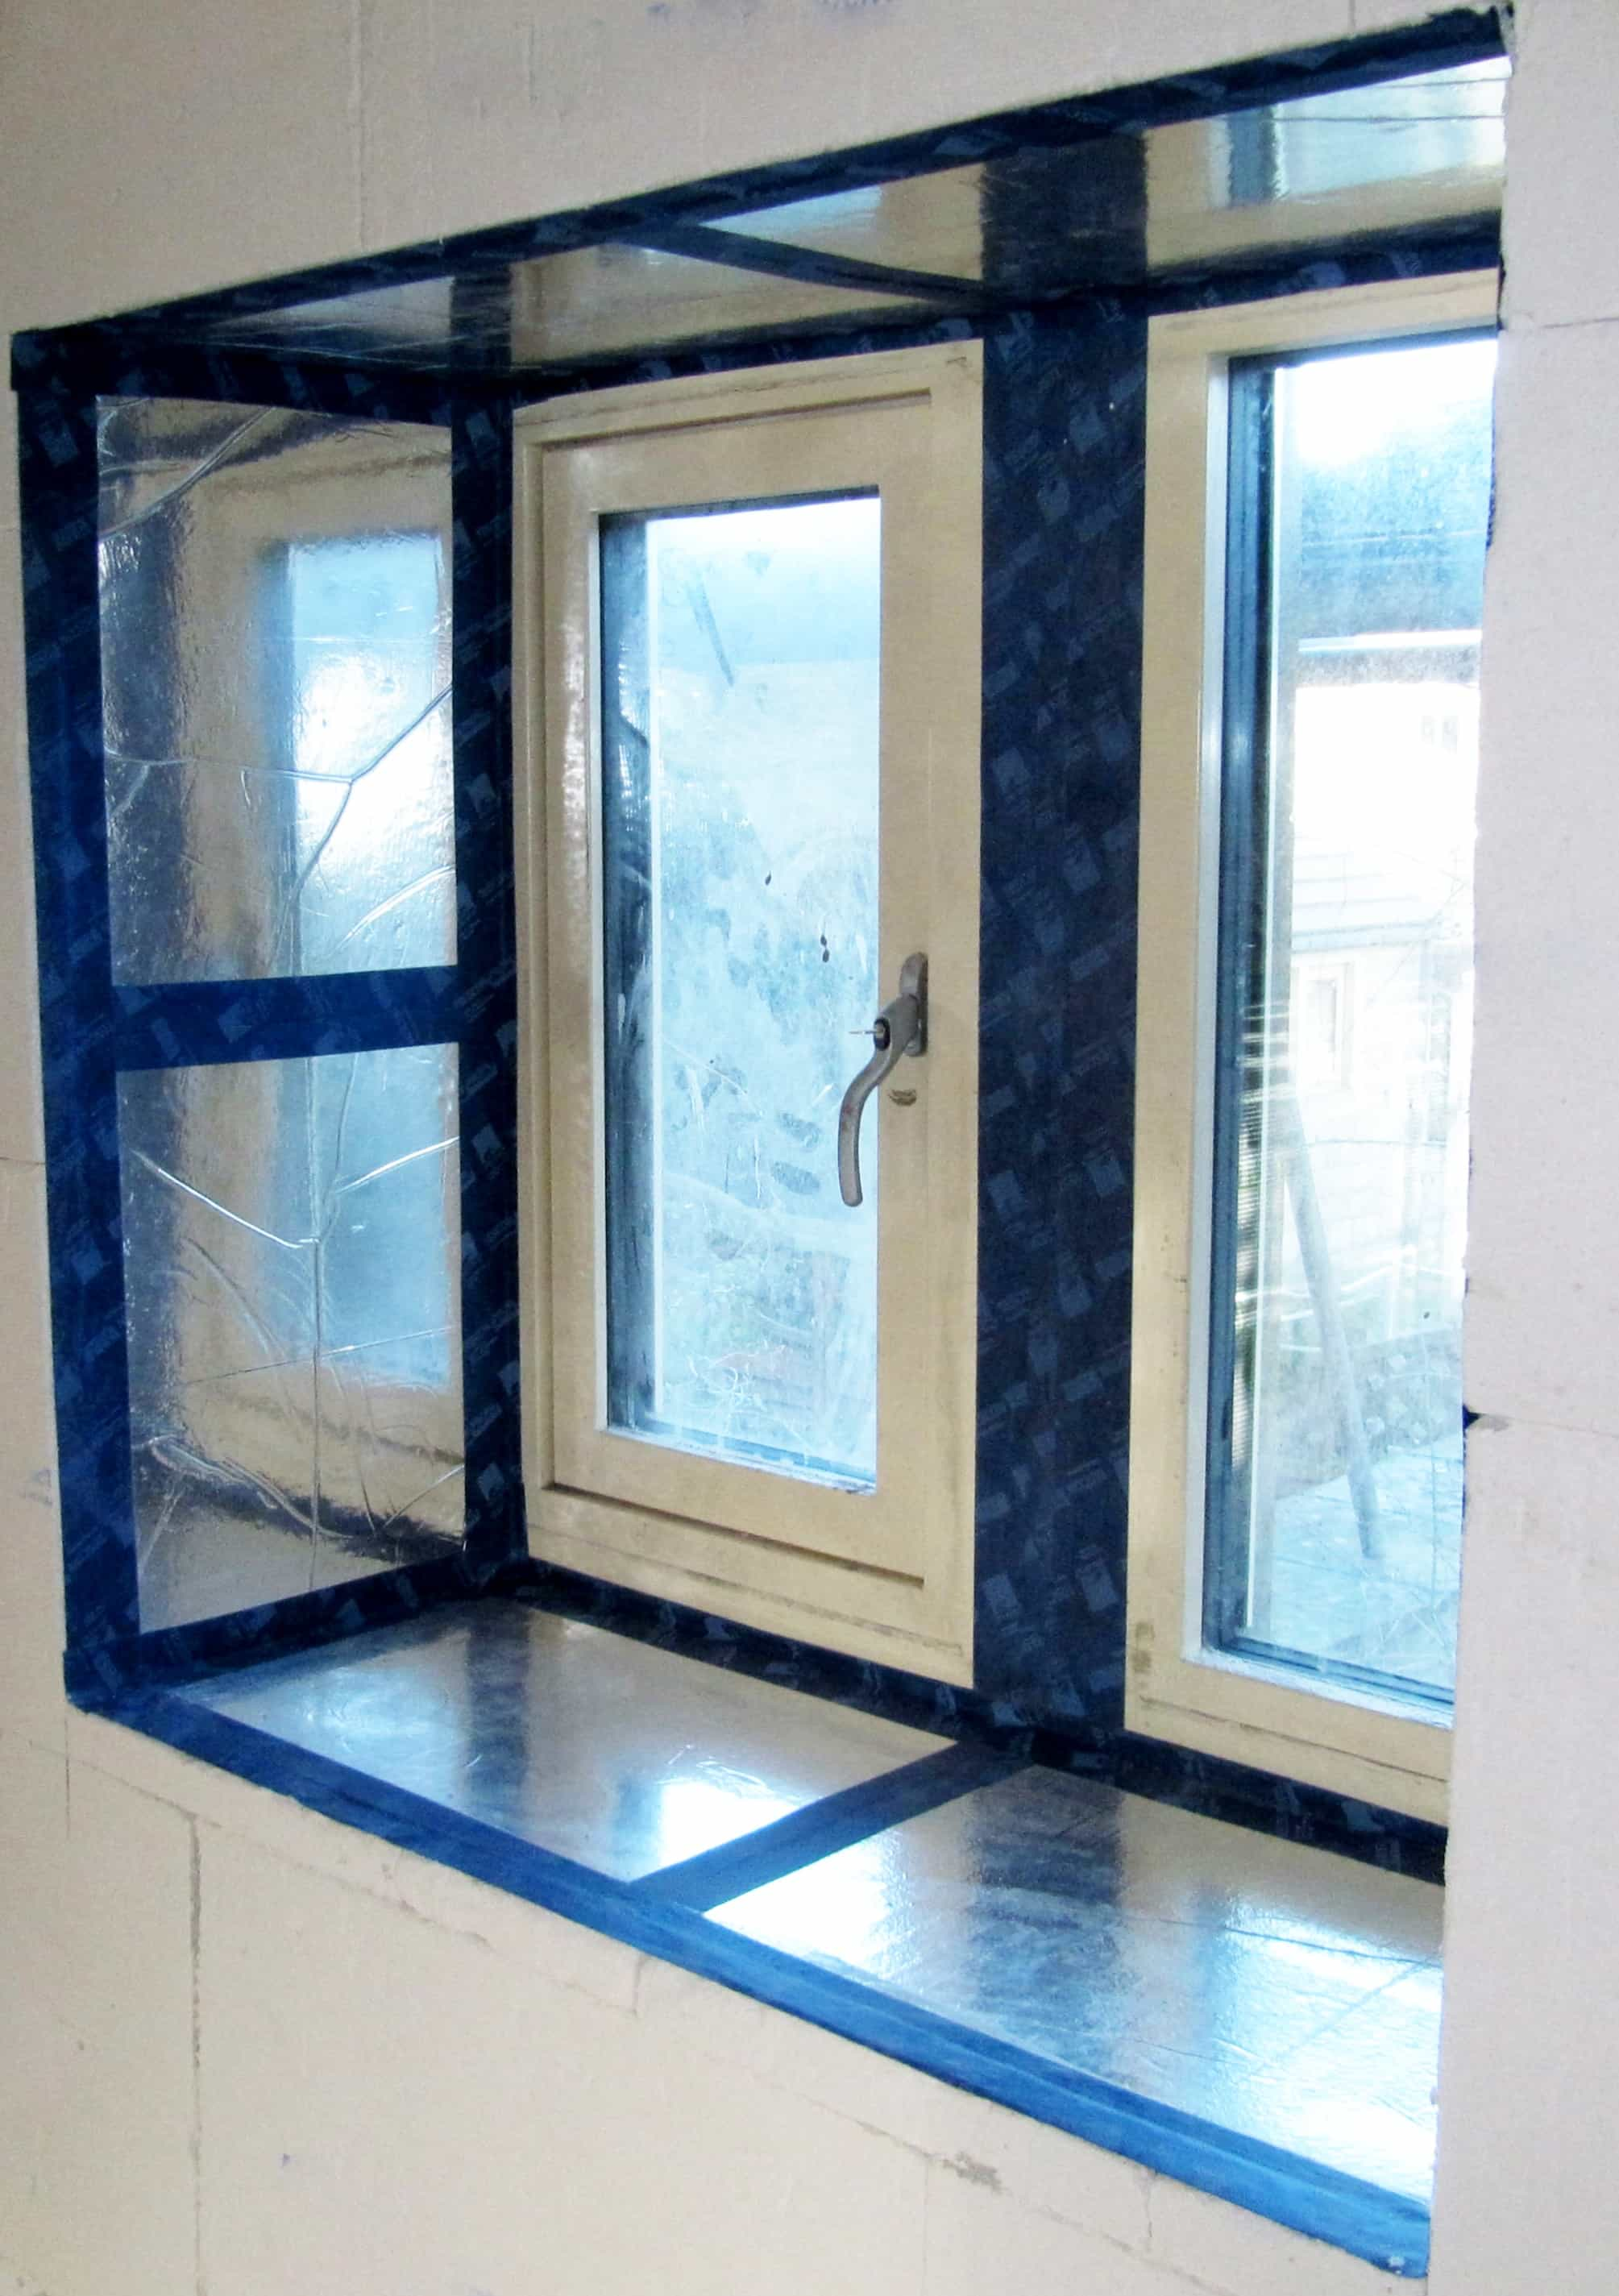 Cumberworth radical retrofit insulating window reveals for Retrofit windows